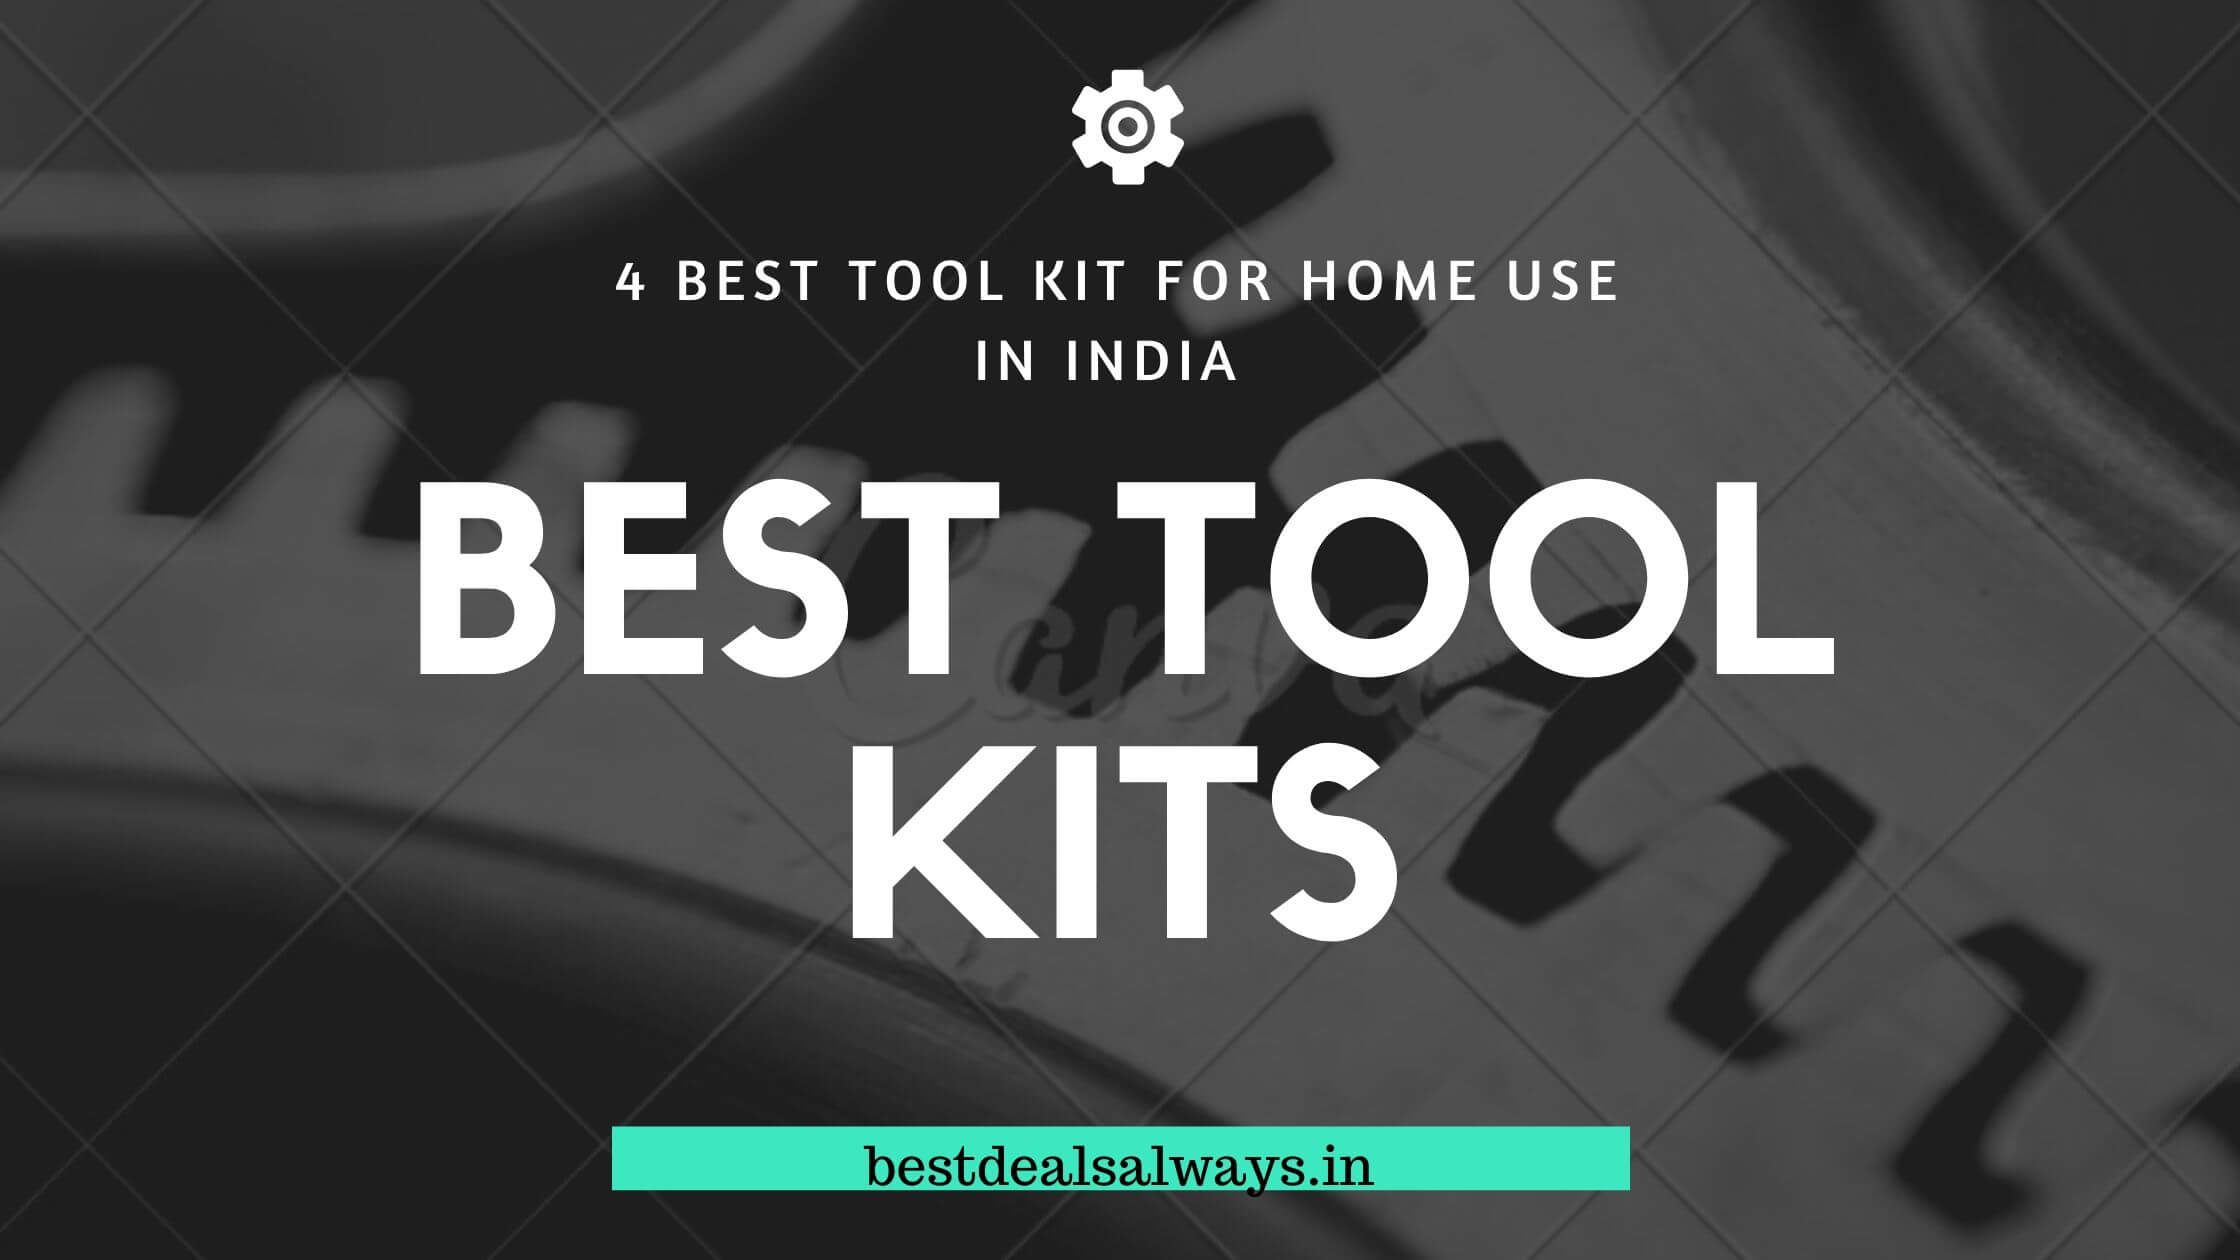 4 Best Tool Kit for Home Use in India 2021 – Buying Guide & Reviews